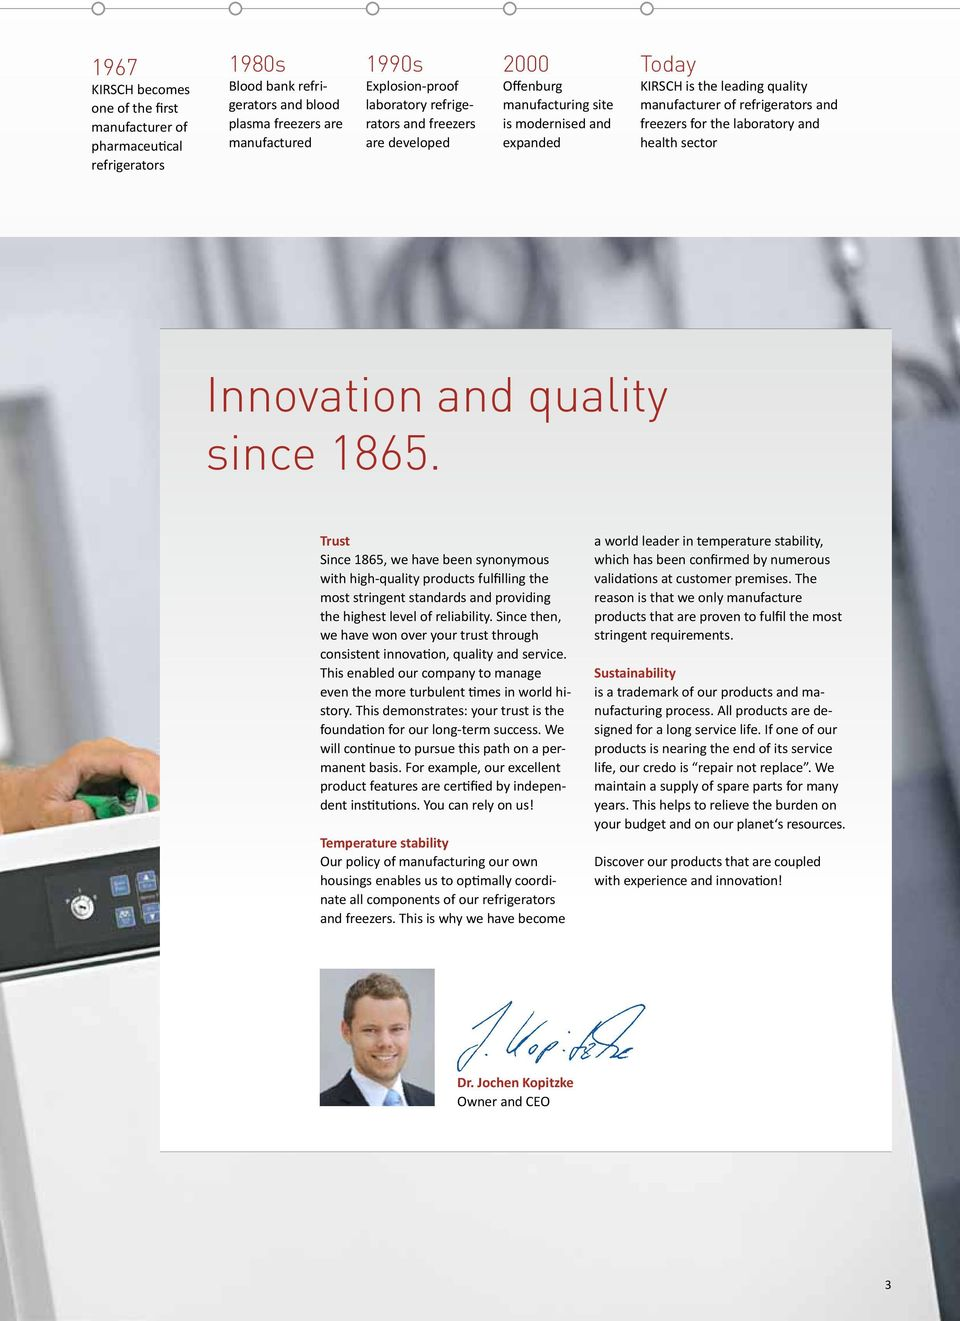 and health sector Innovation and quality since 1865.